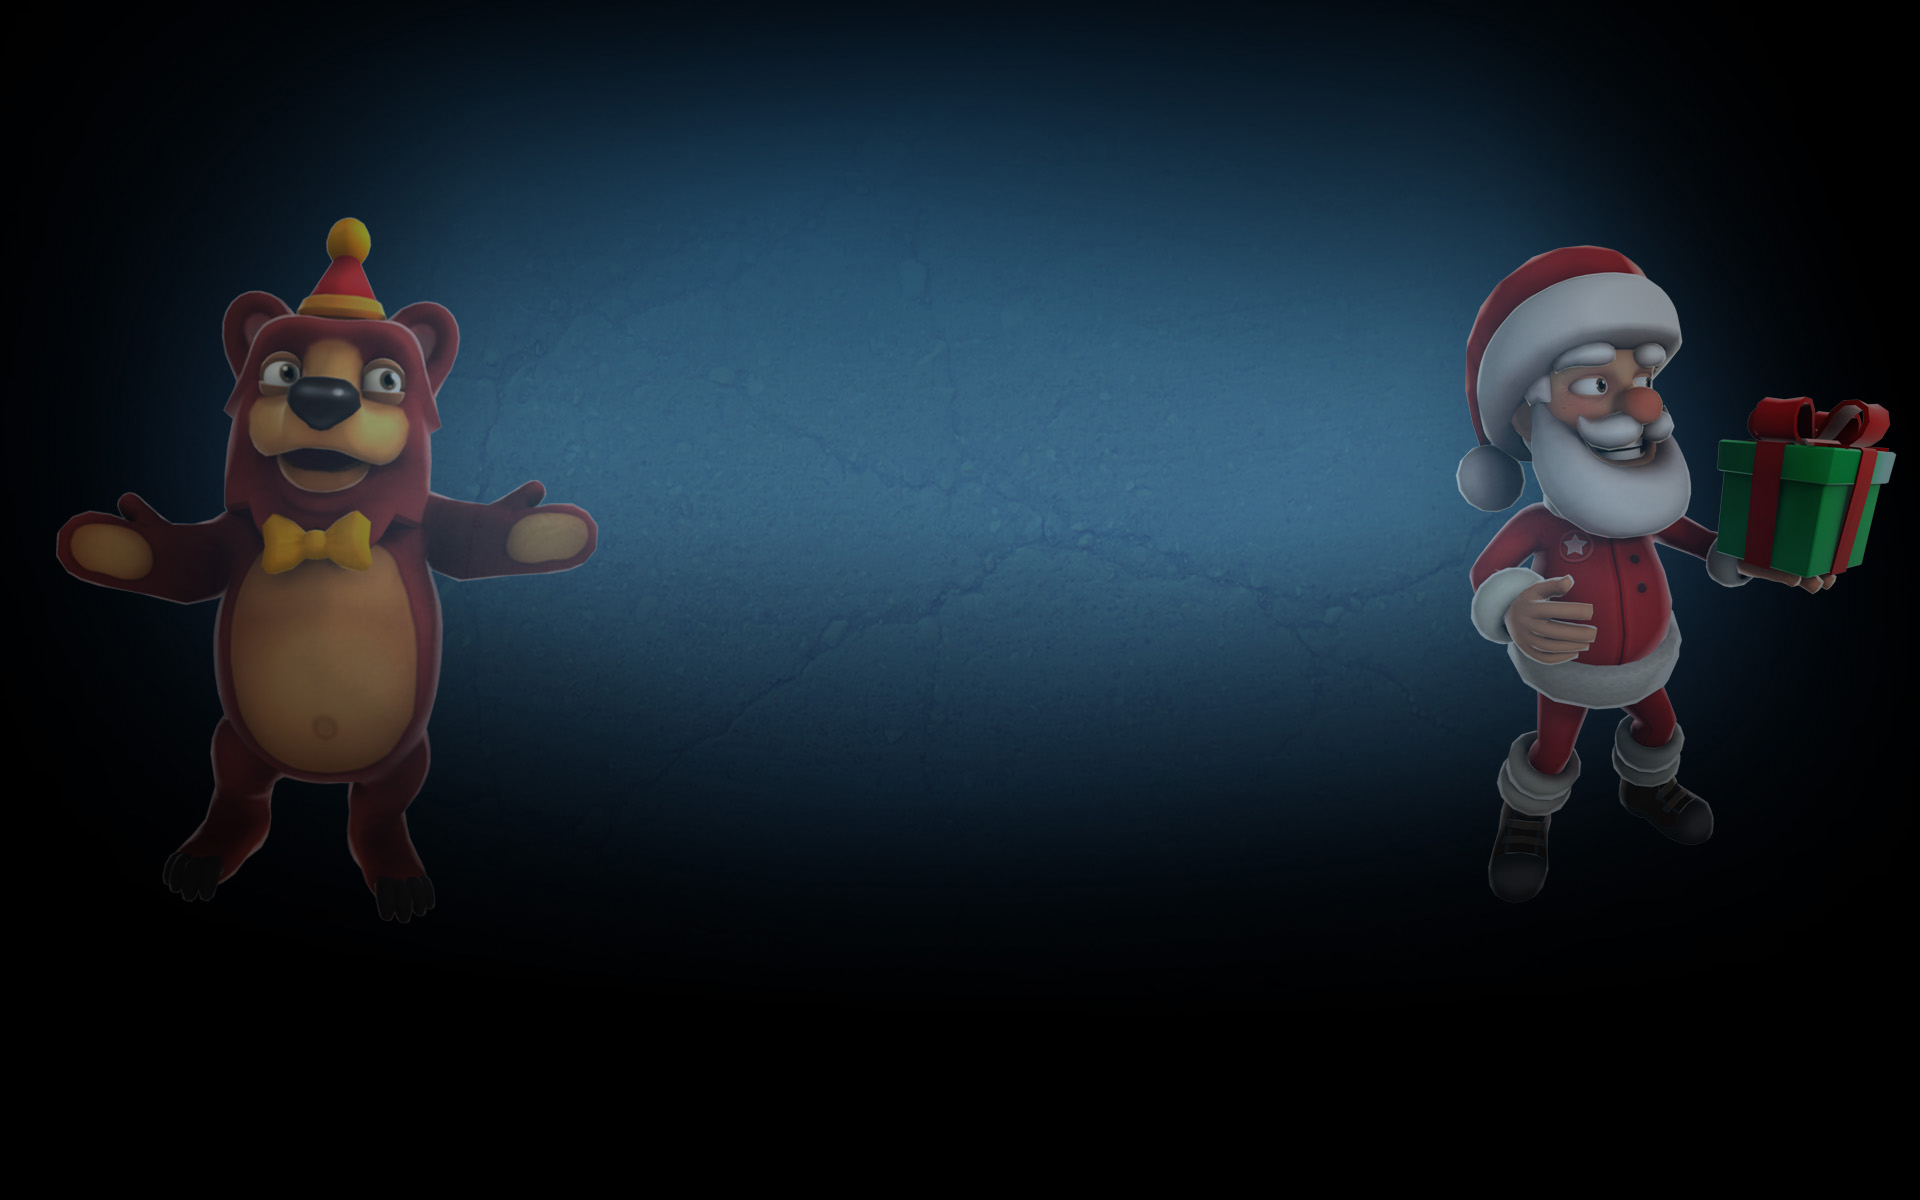 prepare your steam profile for christmas and help finding more